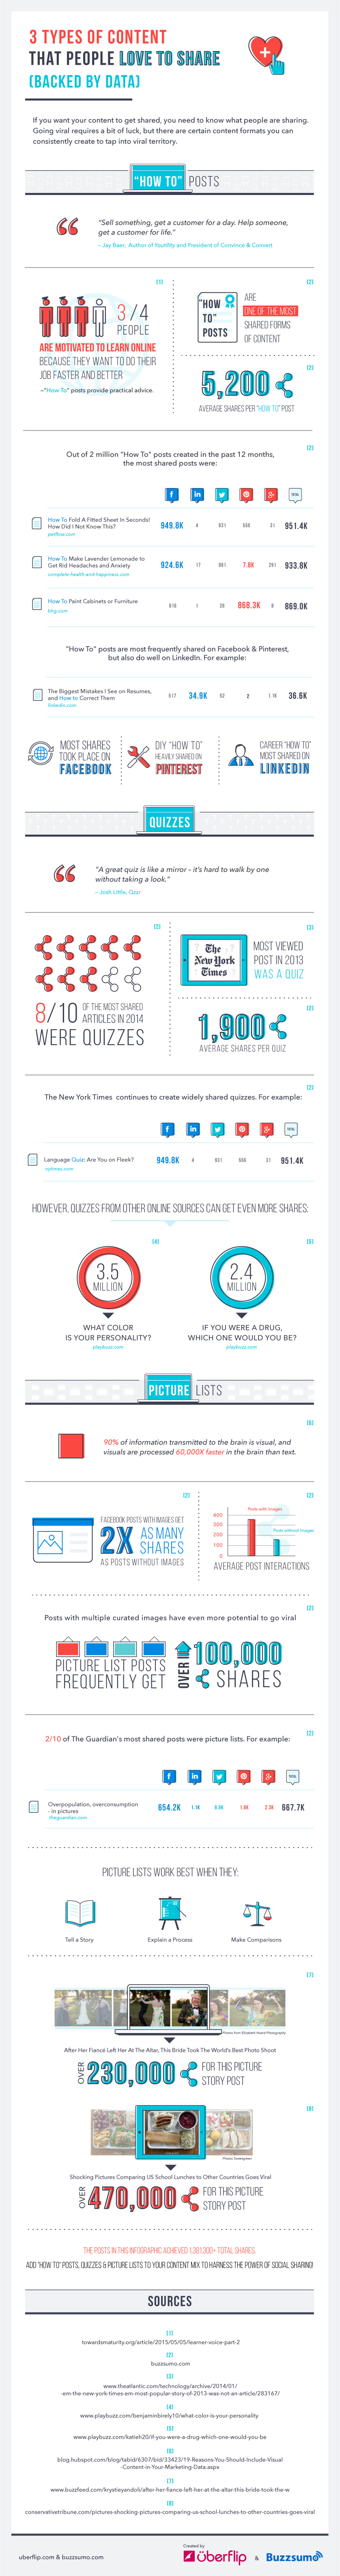 3 Content Formats That People Love to Share